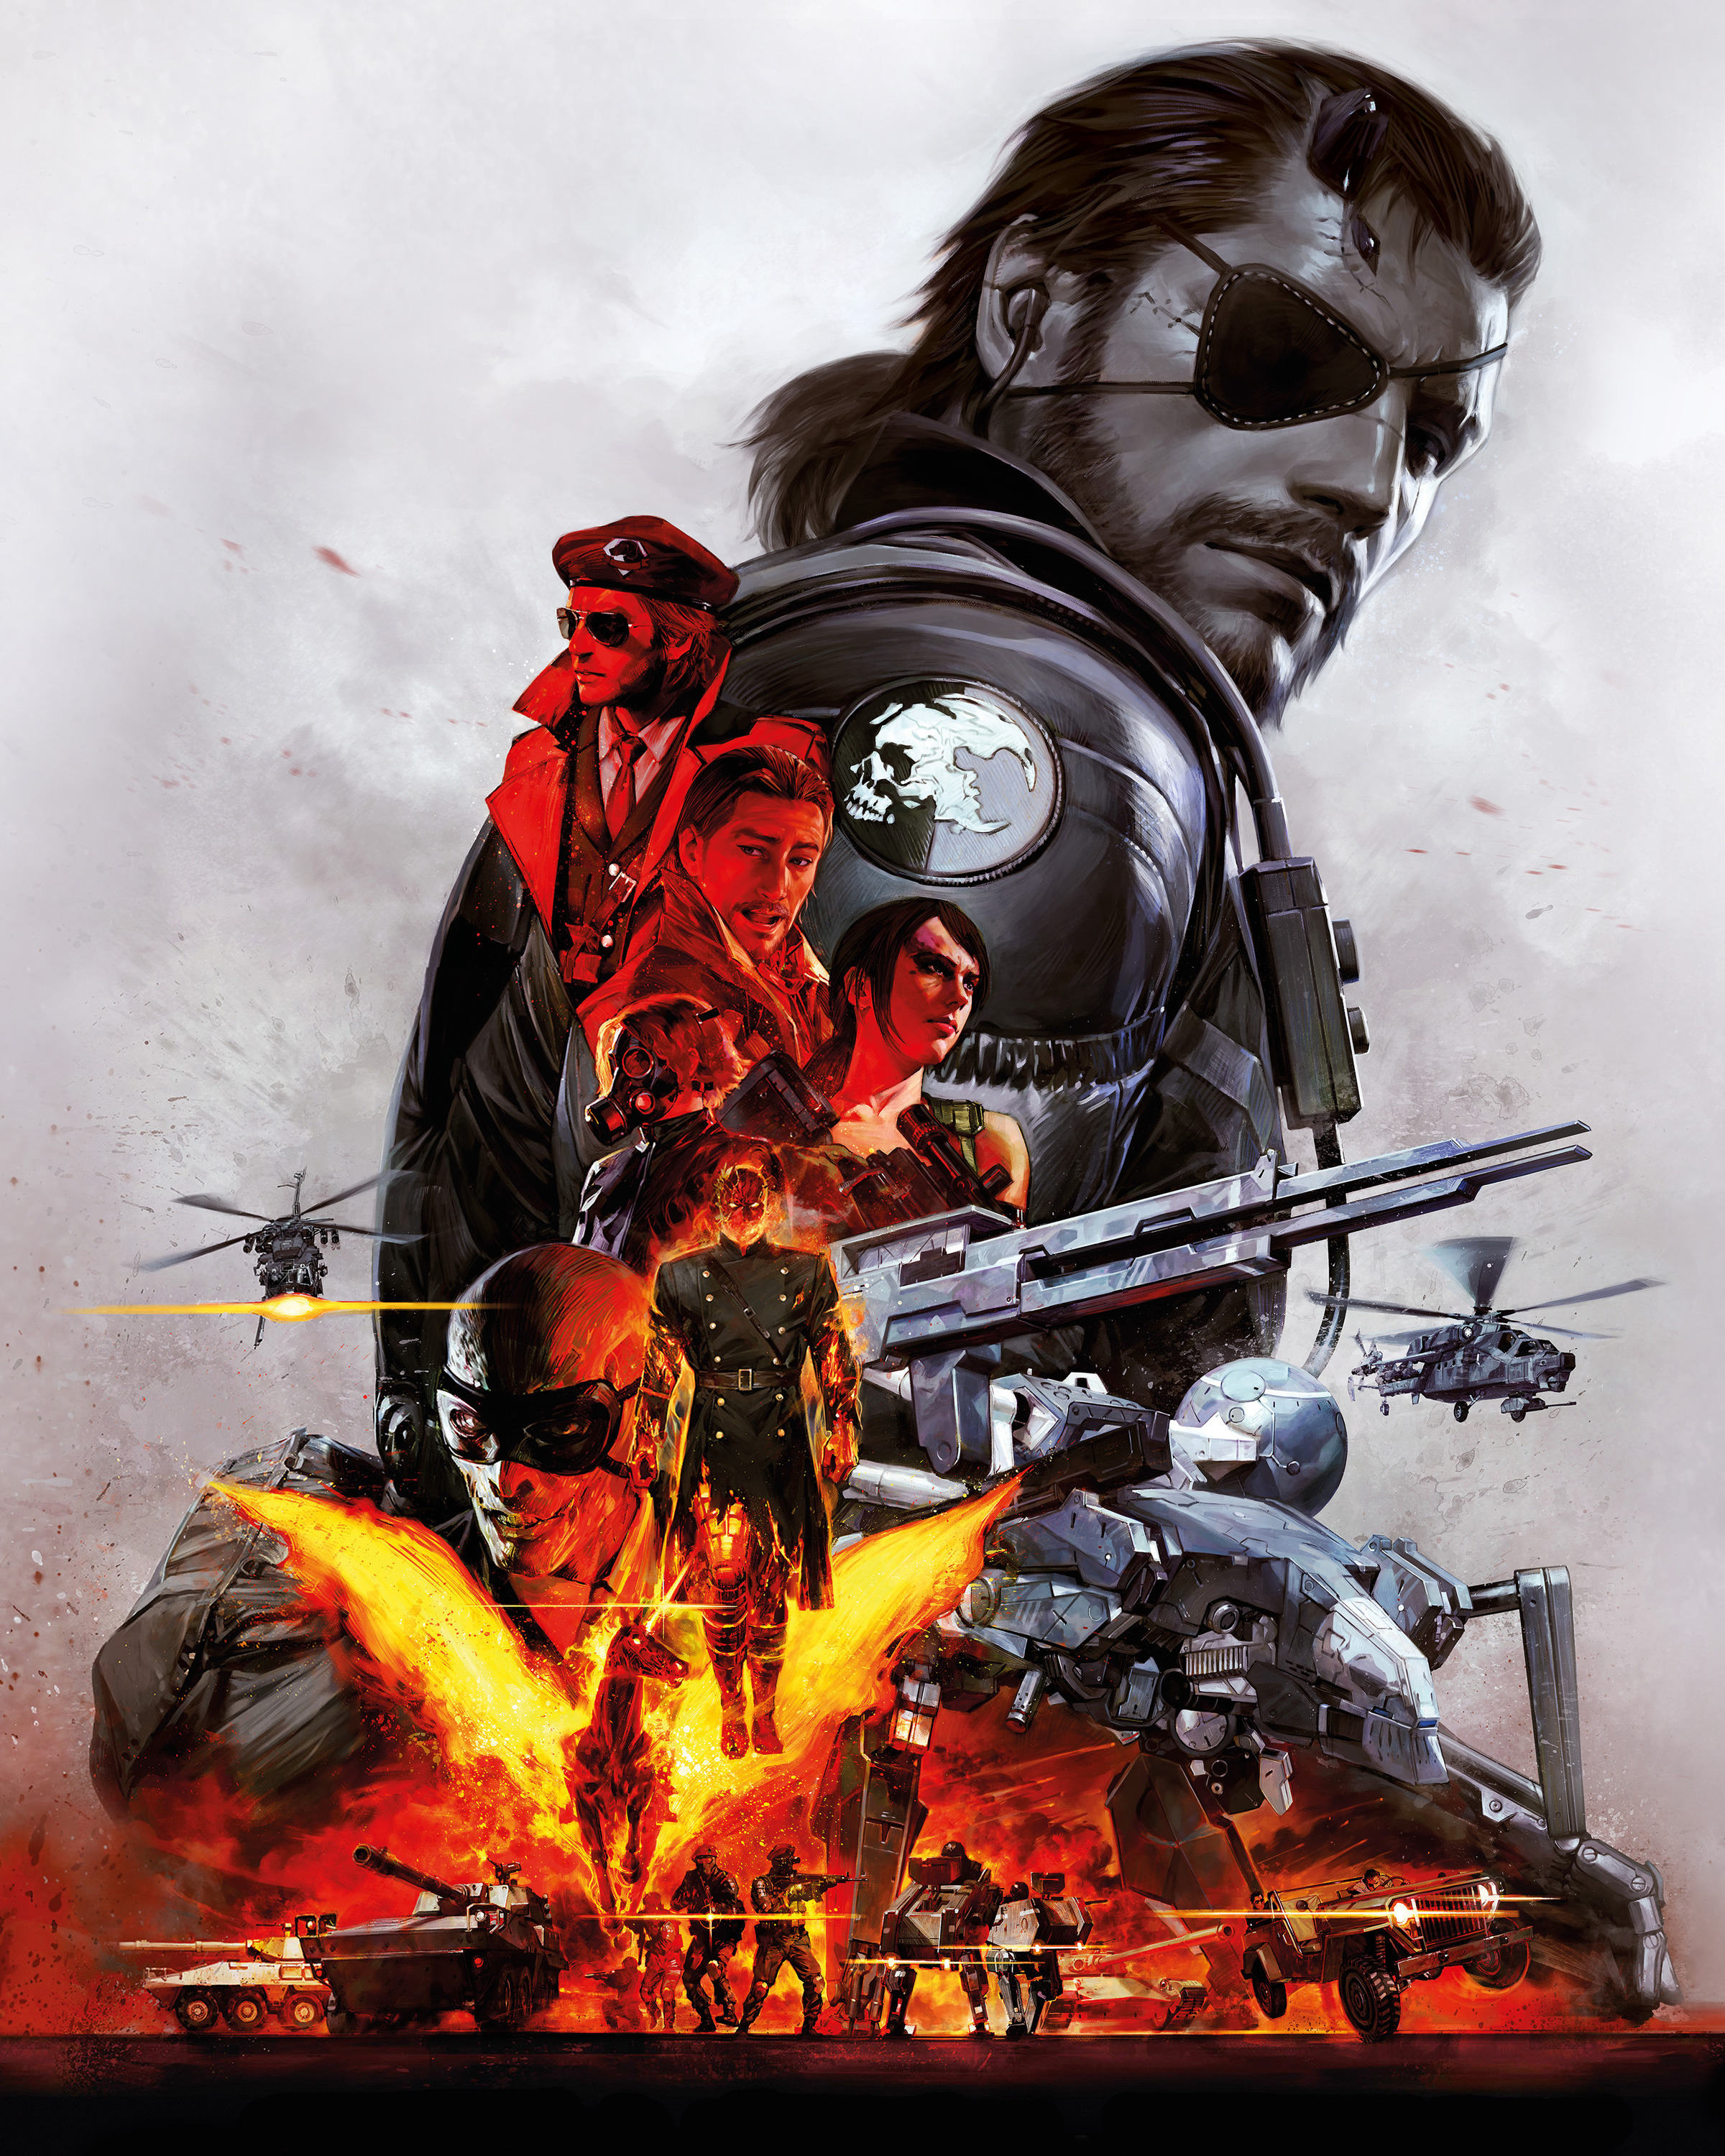 Metal-Gear-Solid-V-The-Phantom-Pain-Art-Pablo-Uchida.jpg